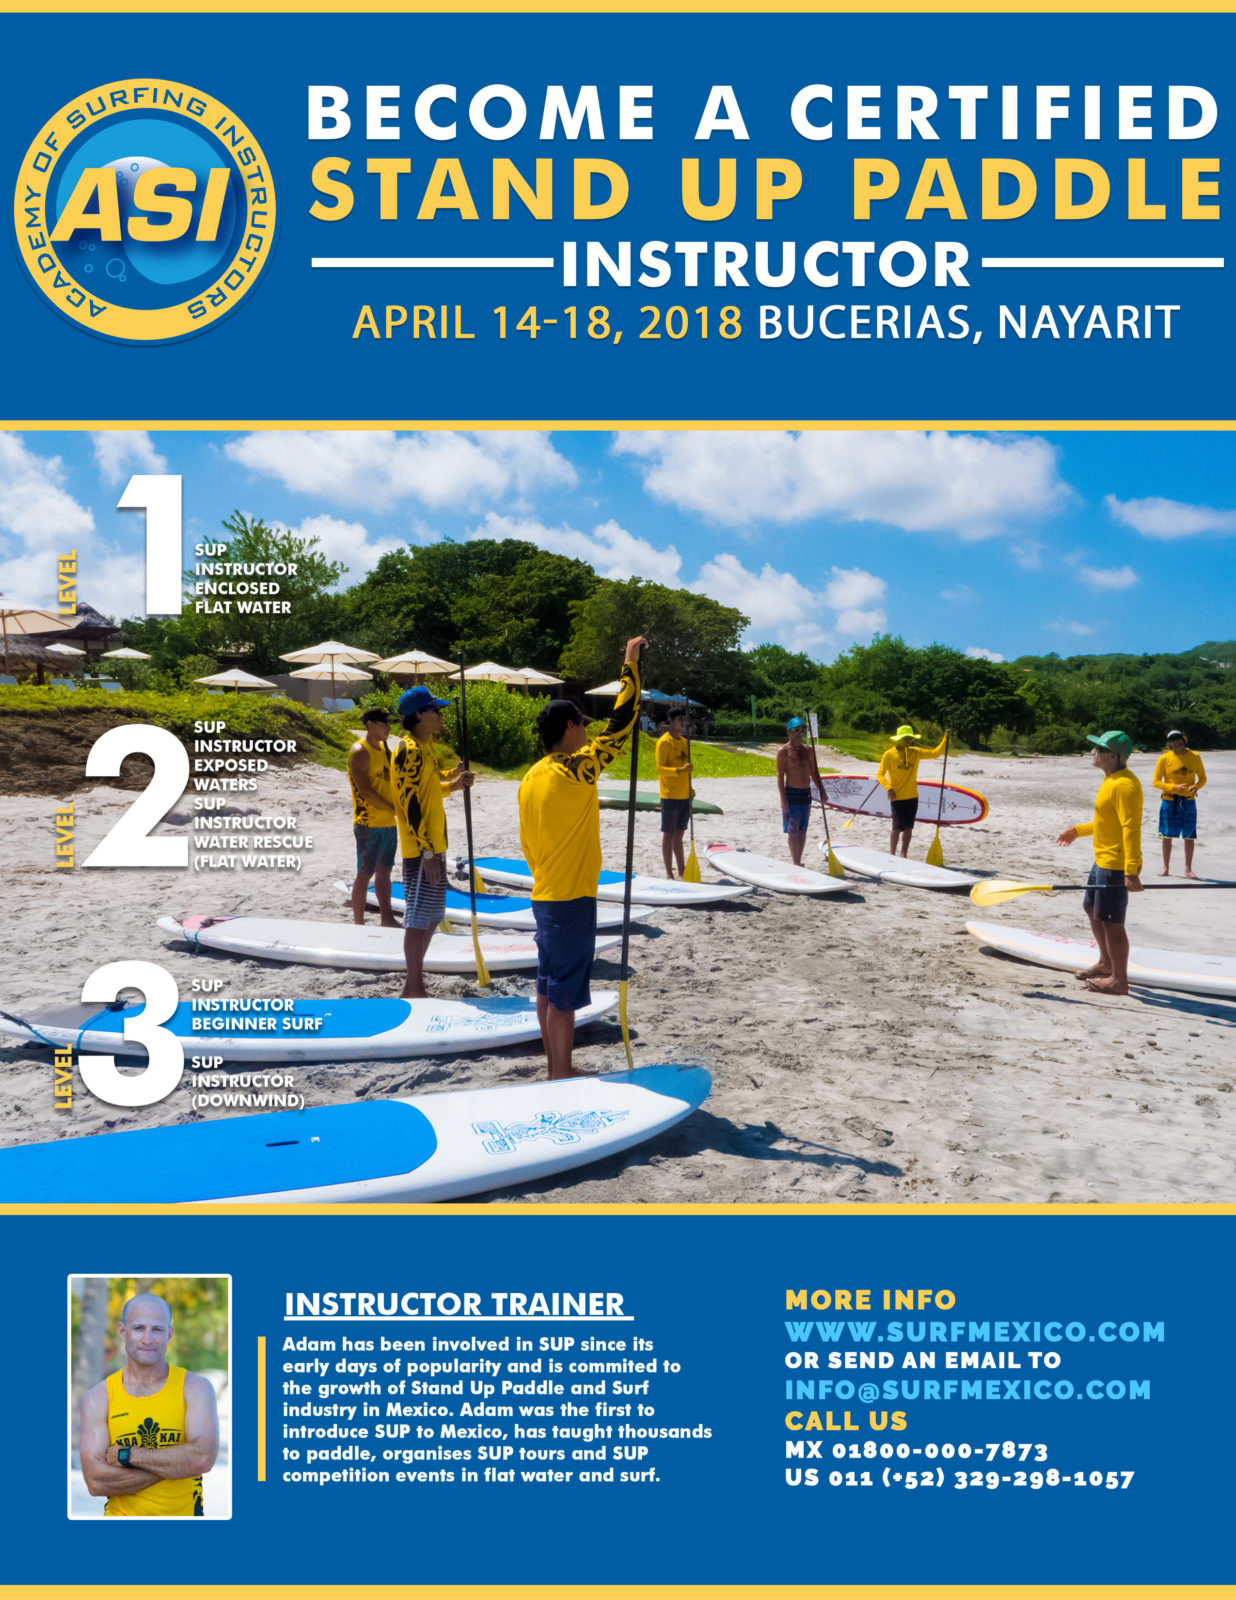 ASI Instructor Training in Surf Mexico April 2018